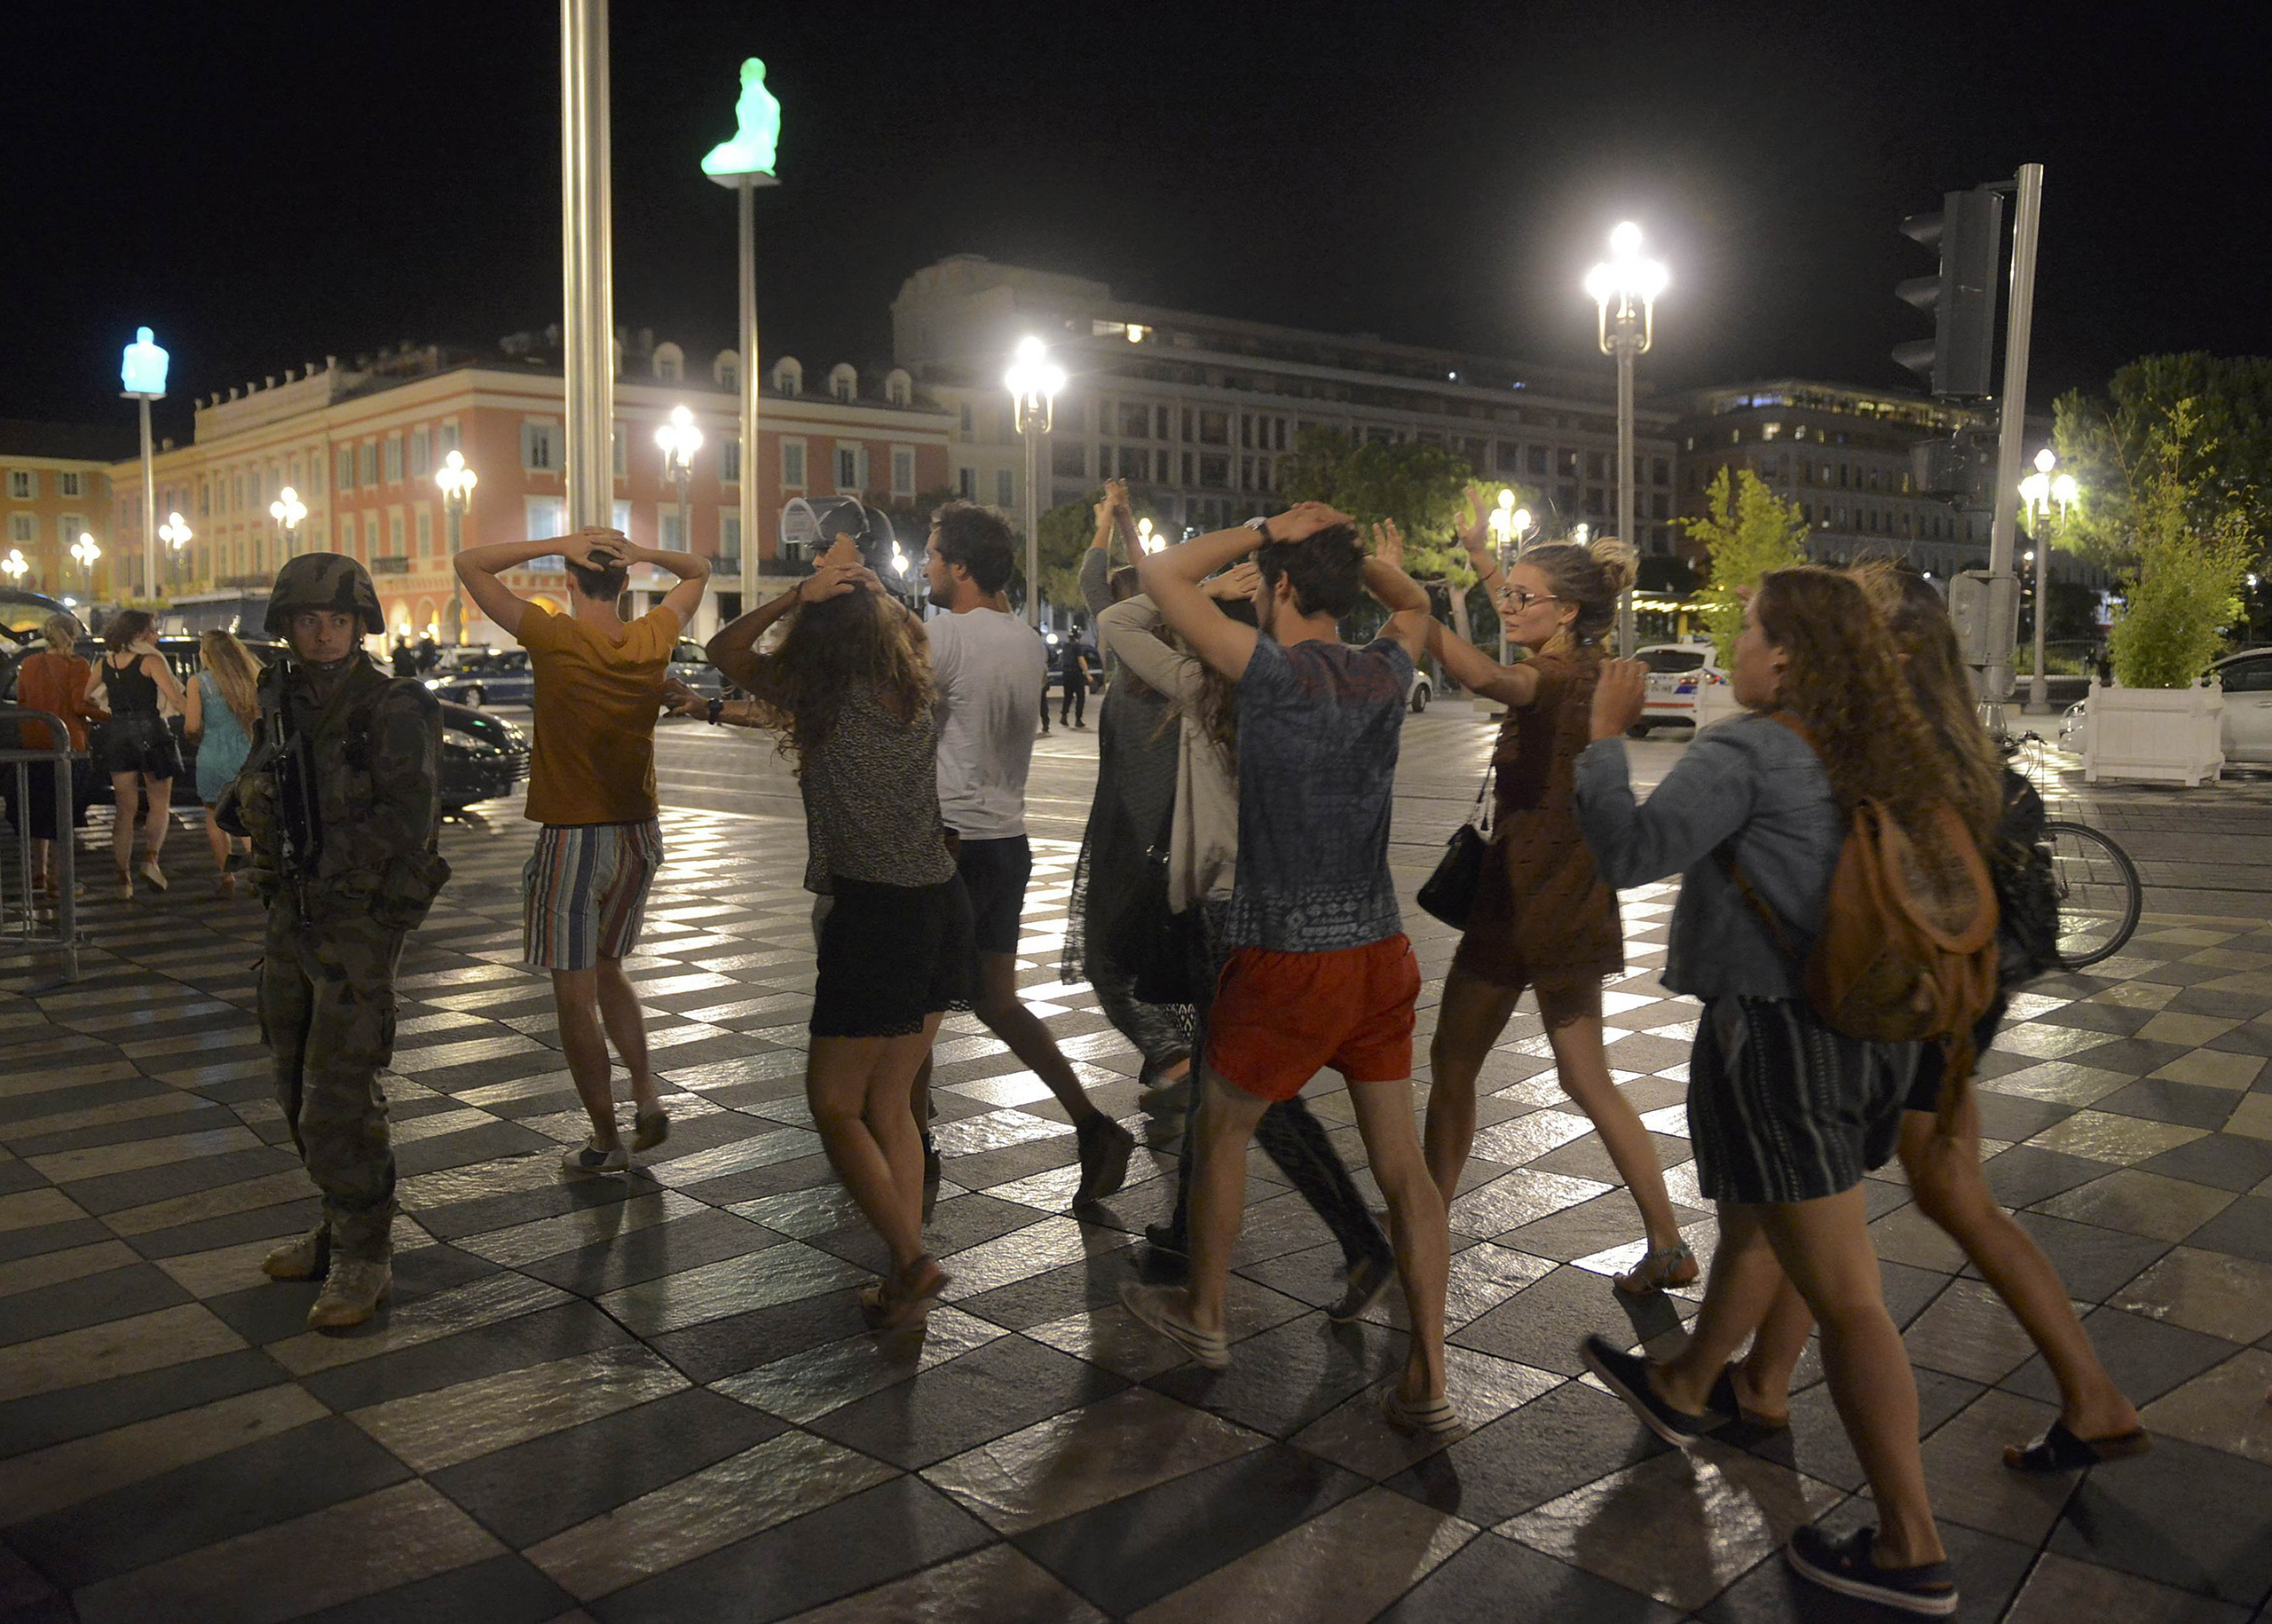 People cross the street with their hands on their heads as a French soldier secures the area in Nice, France, on July 15, 2016, after at least 60 people were killed along the Promenade des Anglais when a truck ran into a crowd celebrating Bastille Day.